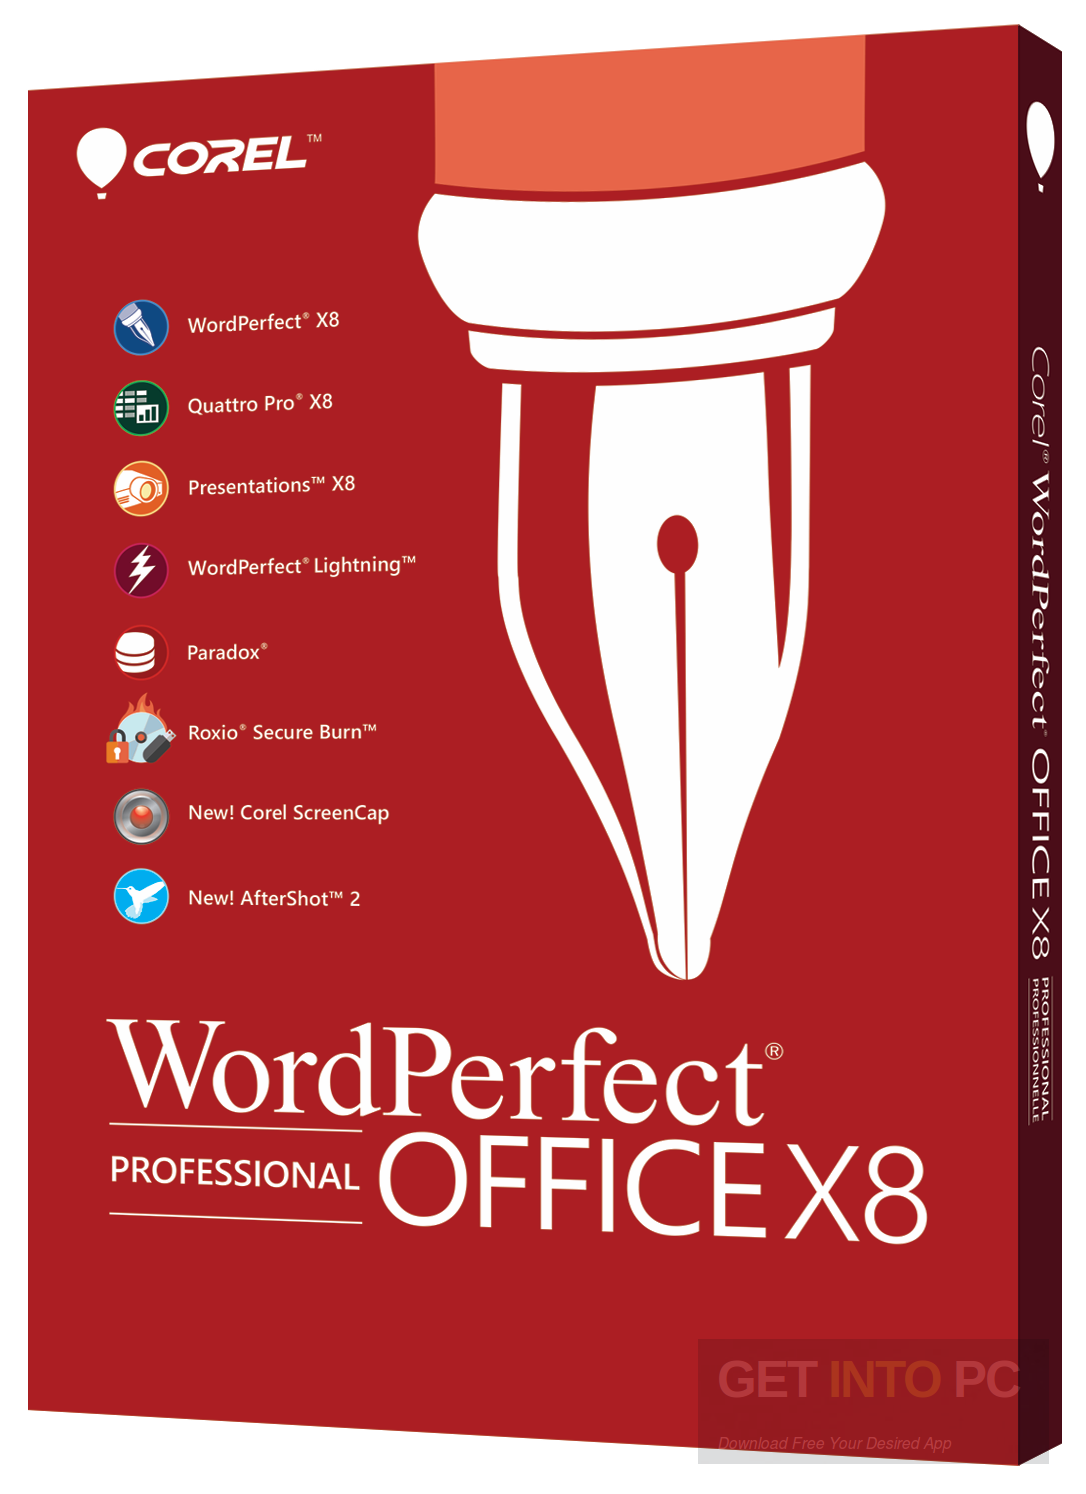 Corel WordPerfect Office X8 Pro Free Download